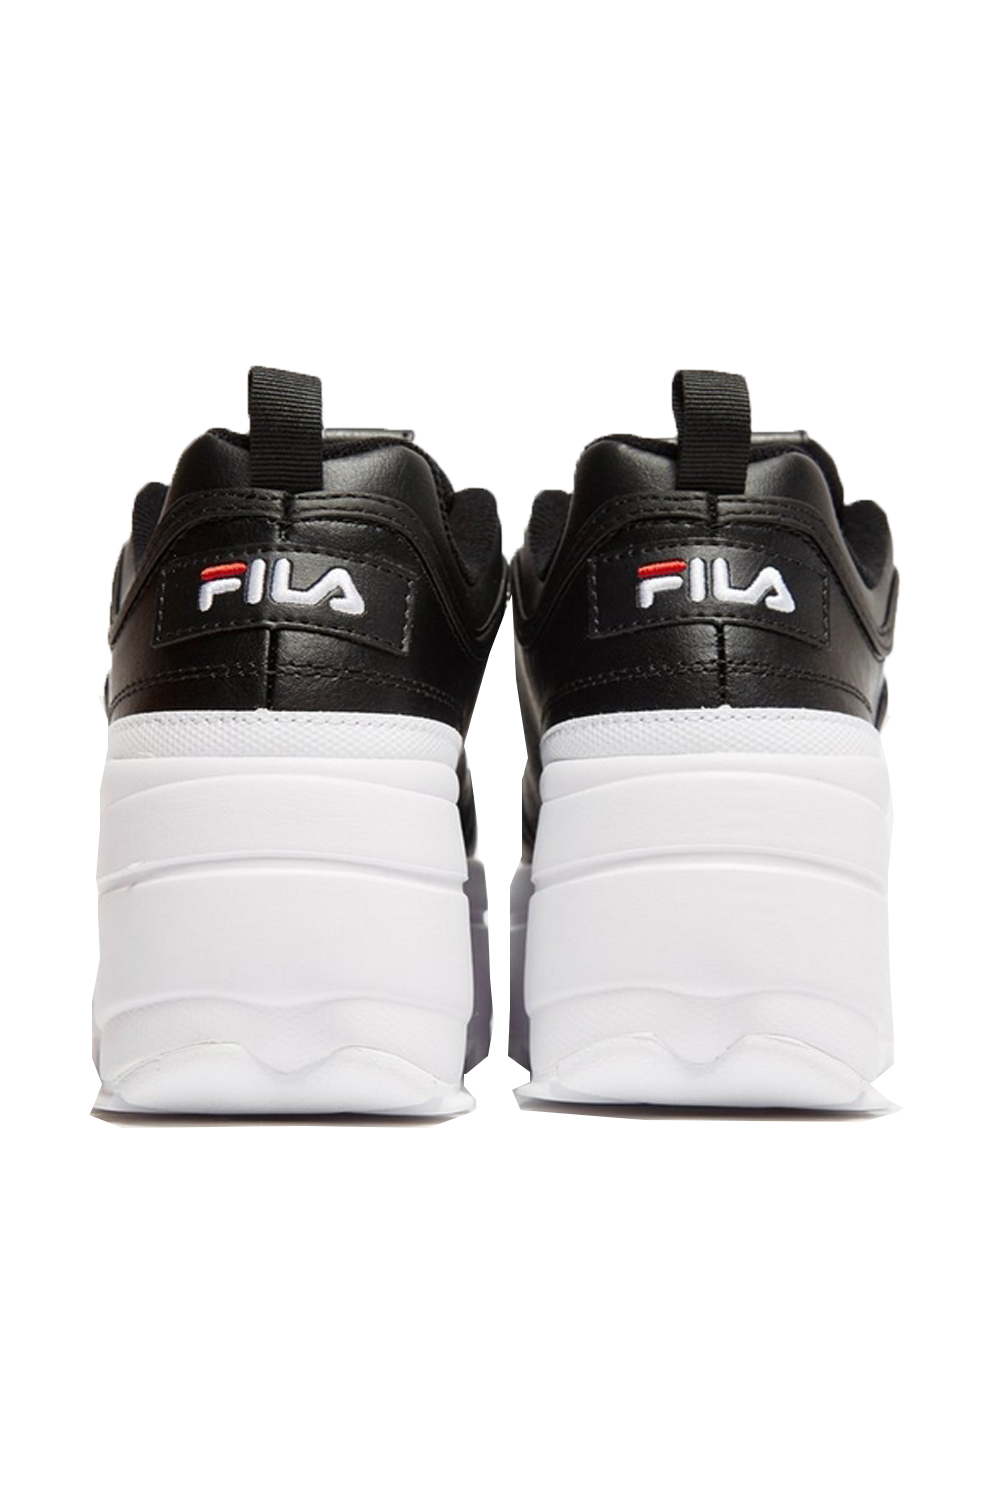 Fila-Disruptor-ll-Wedge-Womens-White-Trainers-Casual-Platform-Chunky-Heel-Shoes thumbnail 10